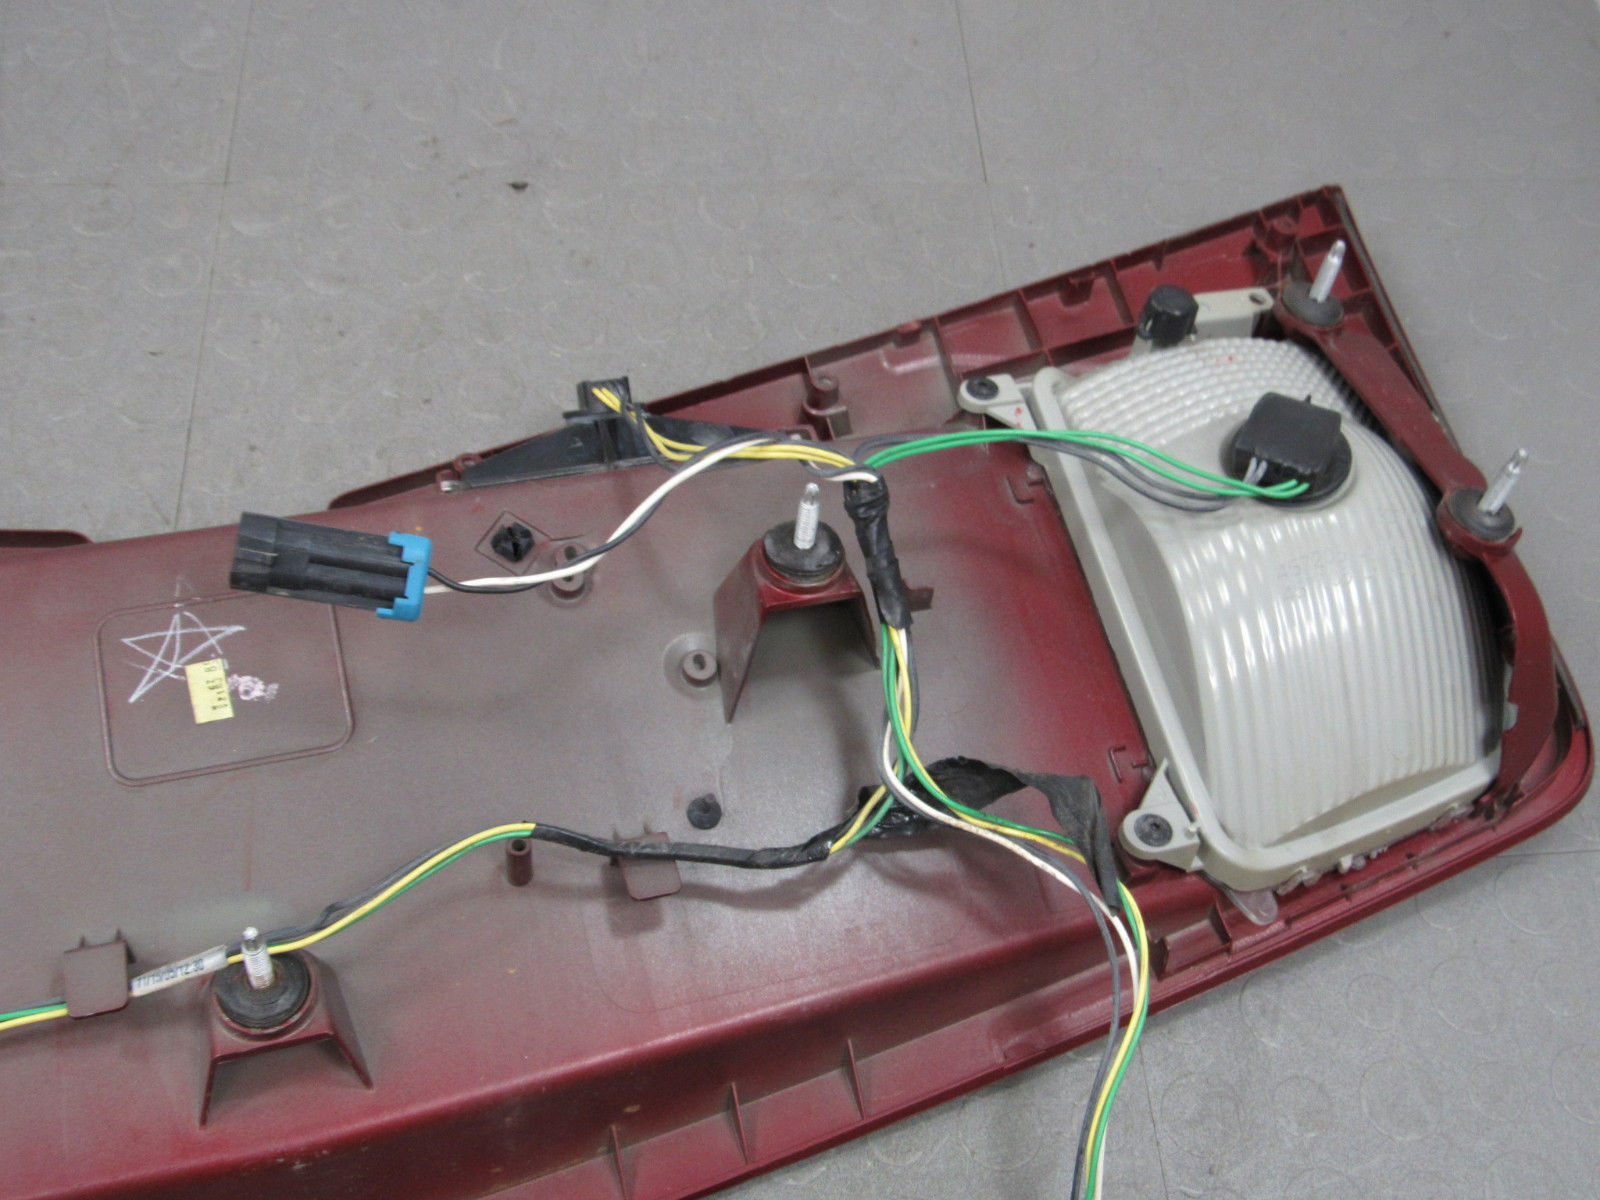 03 07 Cadillac Cts Trunk Tail Finish Trim Panel Bezel License Main  Electrical Panel Box Diagram Cts Wiring Panel